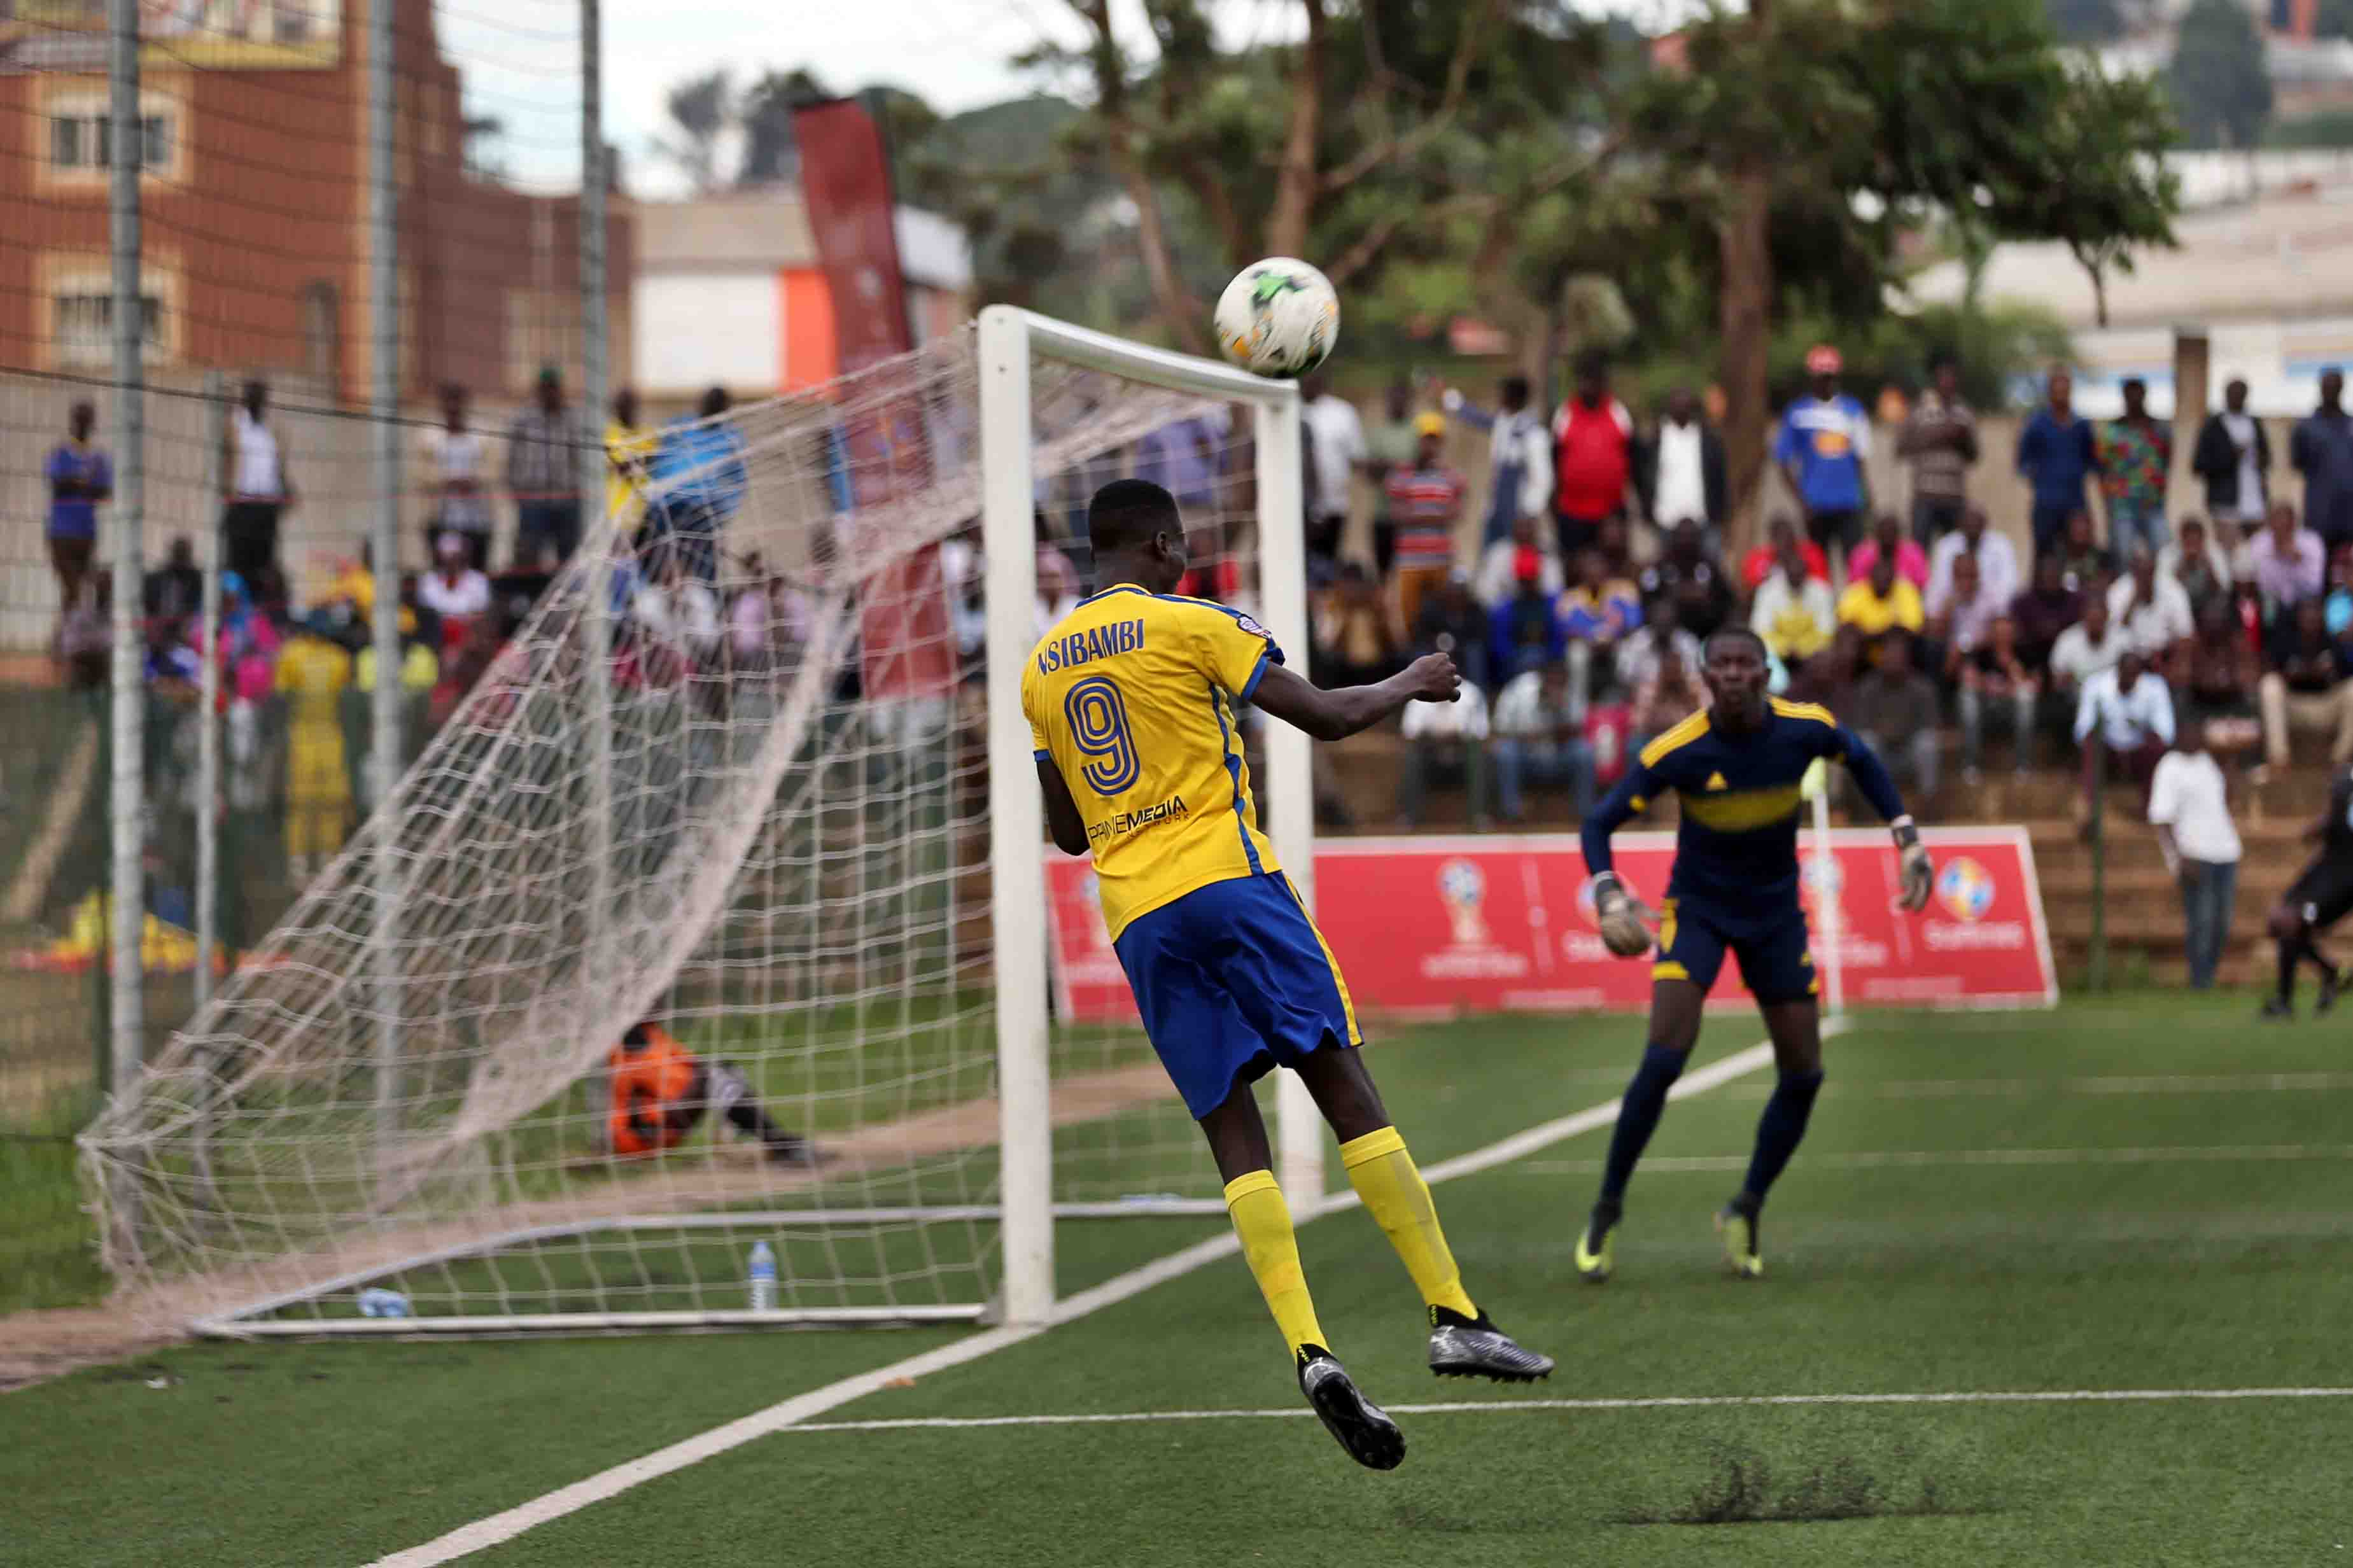 Derrick Nsibambi heads a ball towards the goal on Tuesday (Photo by Shaban Lubega)